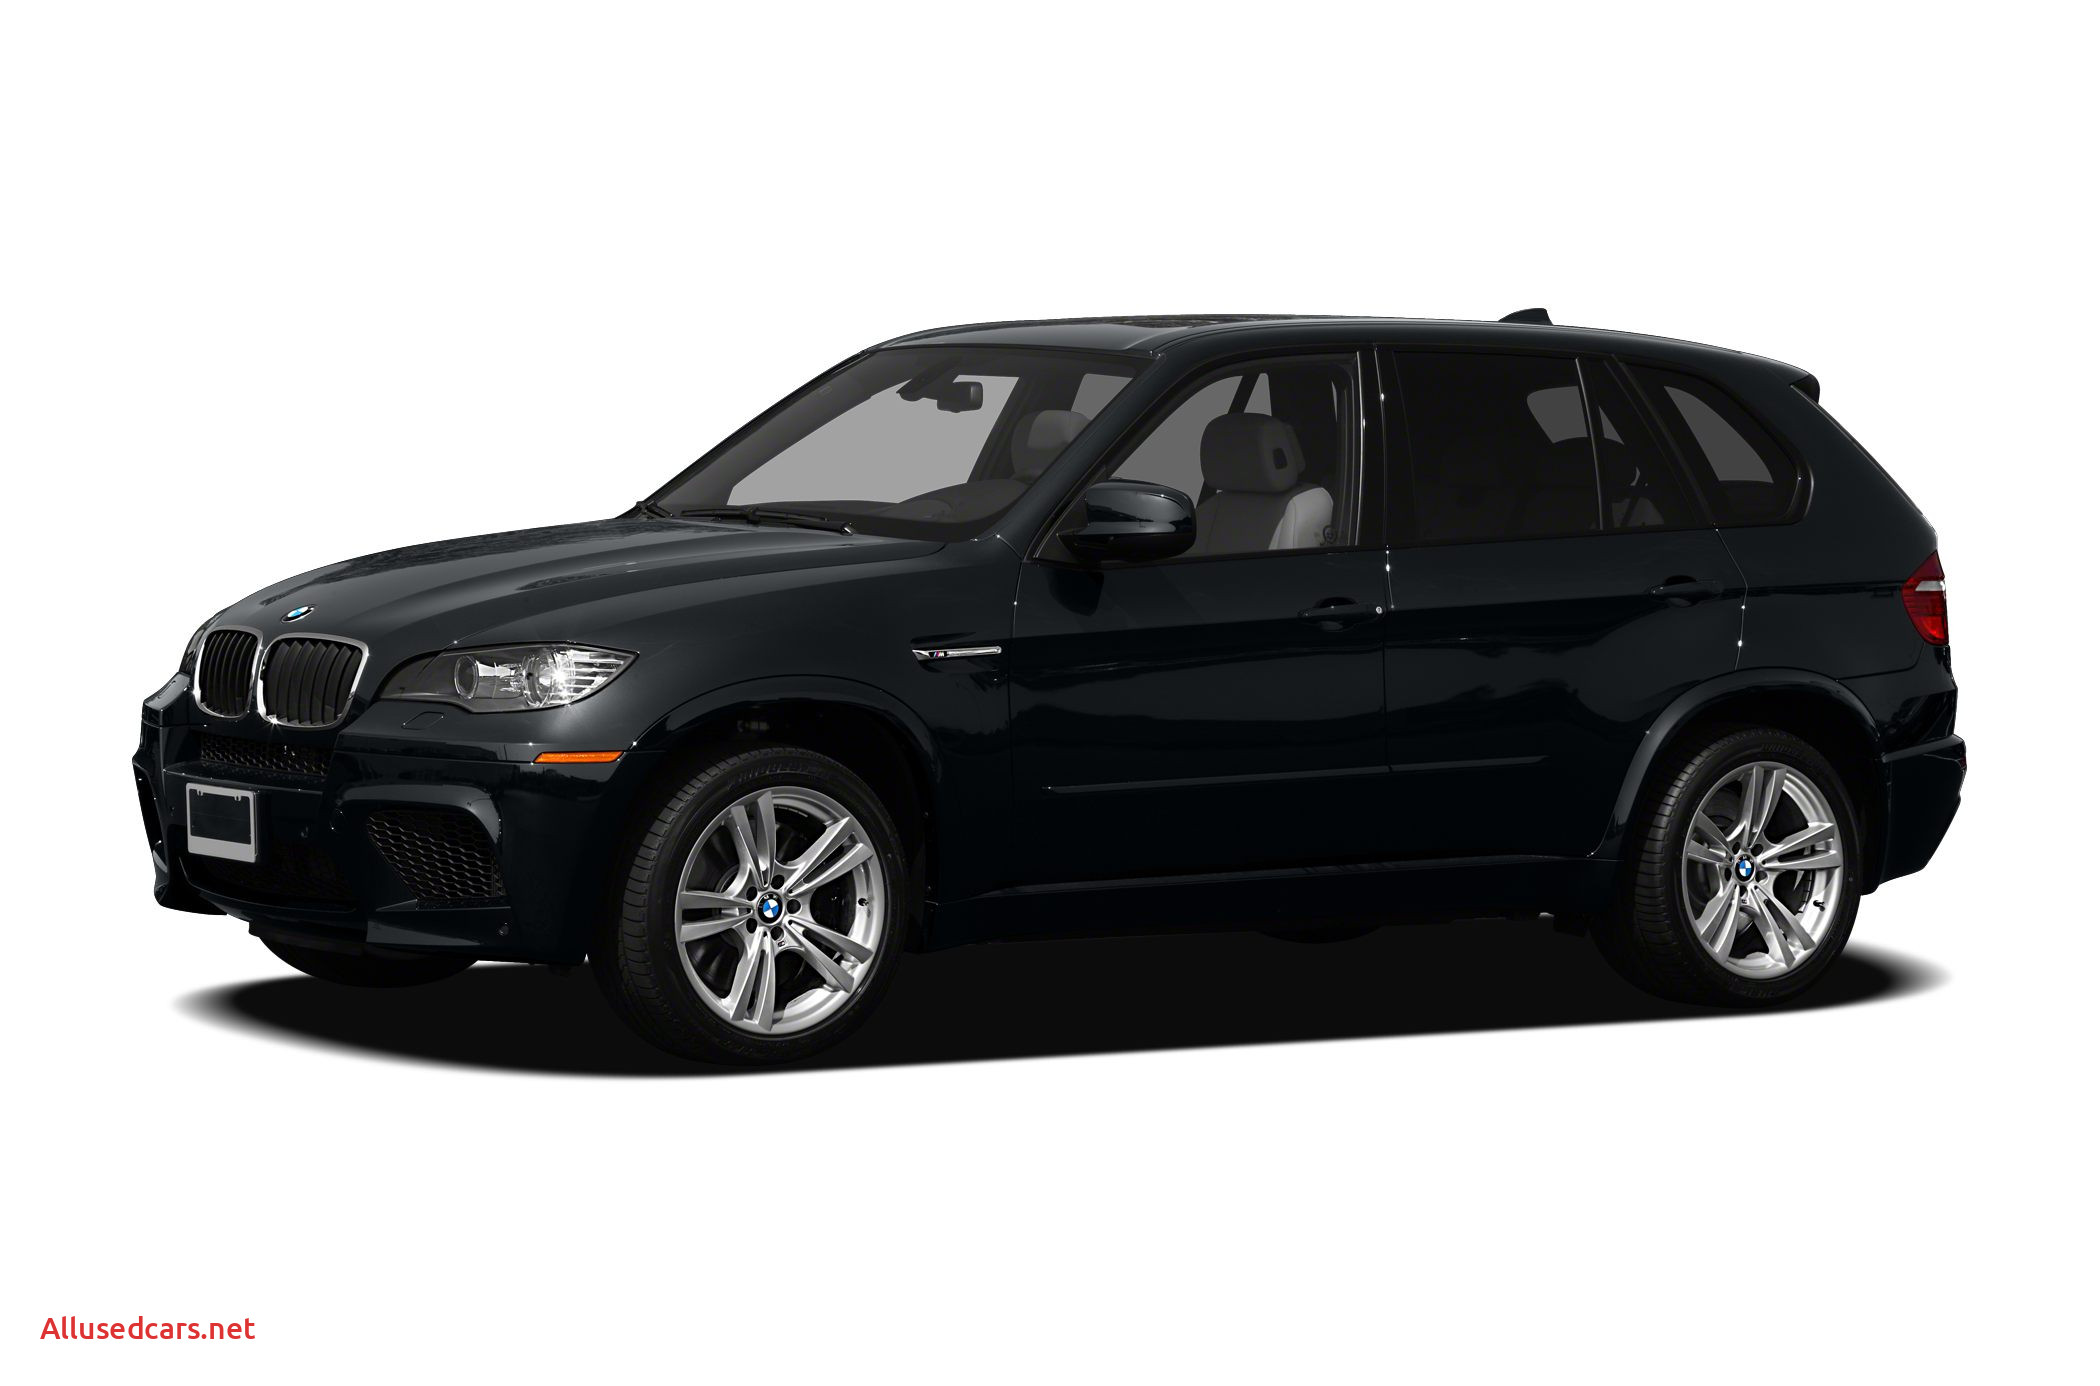 Car Lot Inspirational 2010 Bmw X5 M Specs and Prices